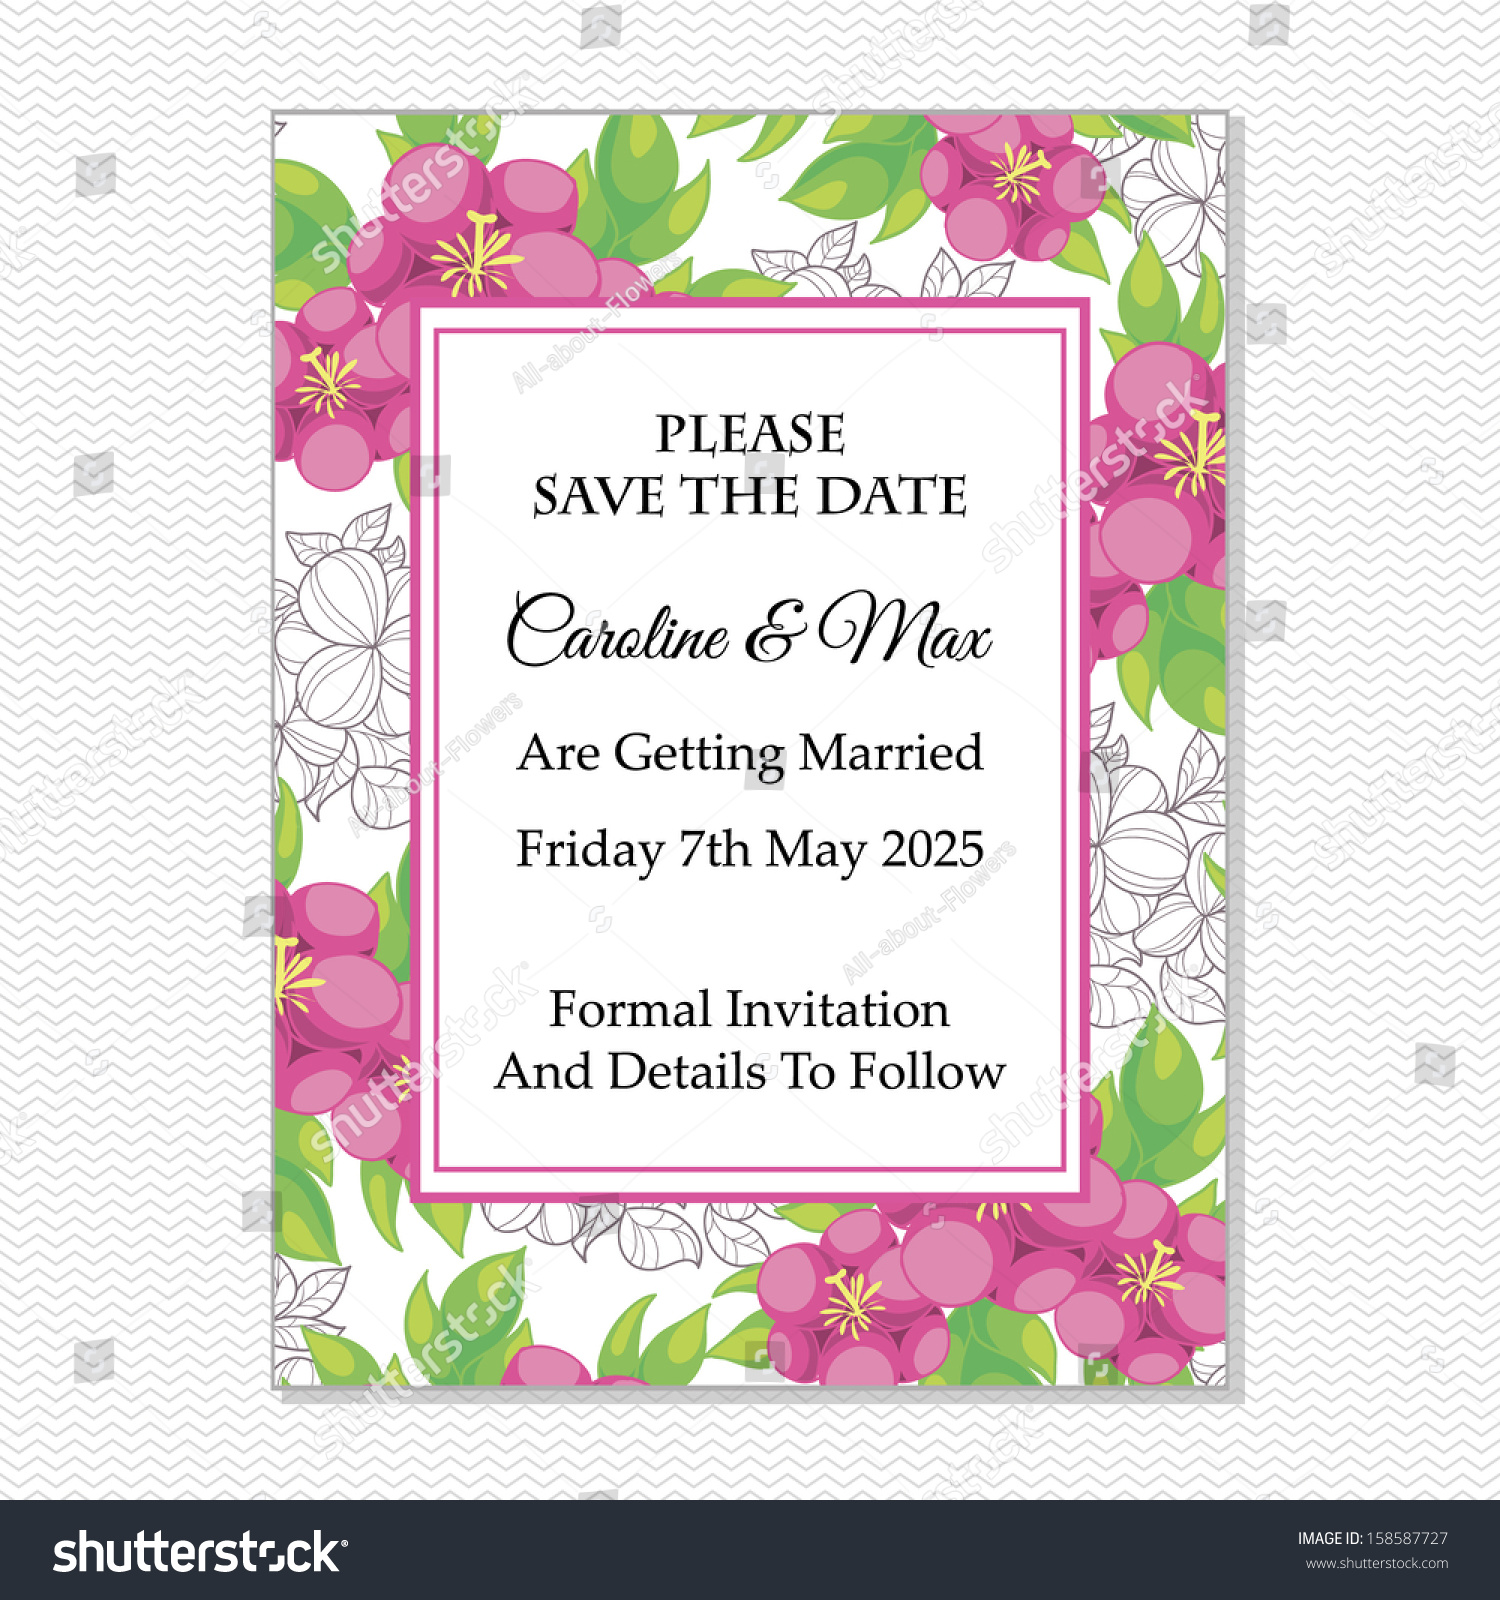 Wedding invitation card vector file contains stock vector wedding invitation card vector file contains few layers for easy using stopboris Image collections